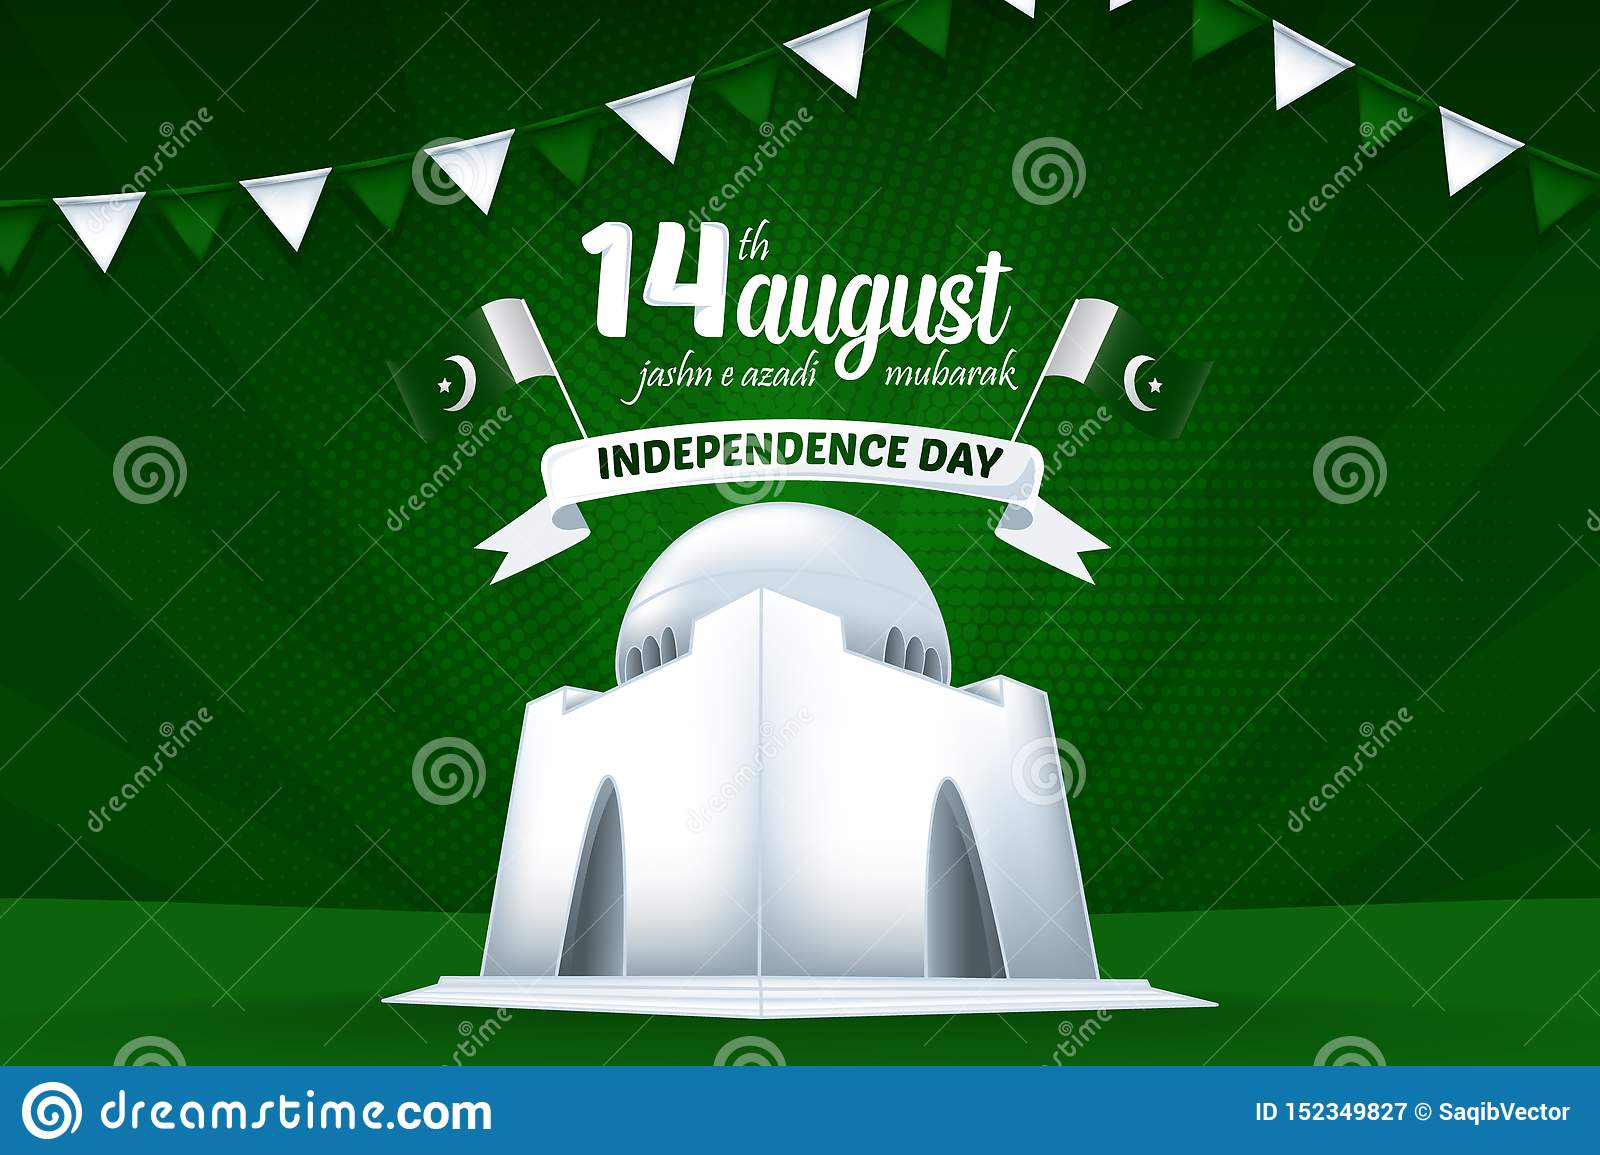 14 August Mubarak Pakistan Independence Day Vector Background Illustration